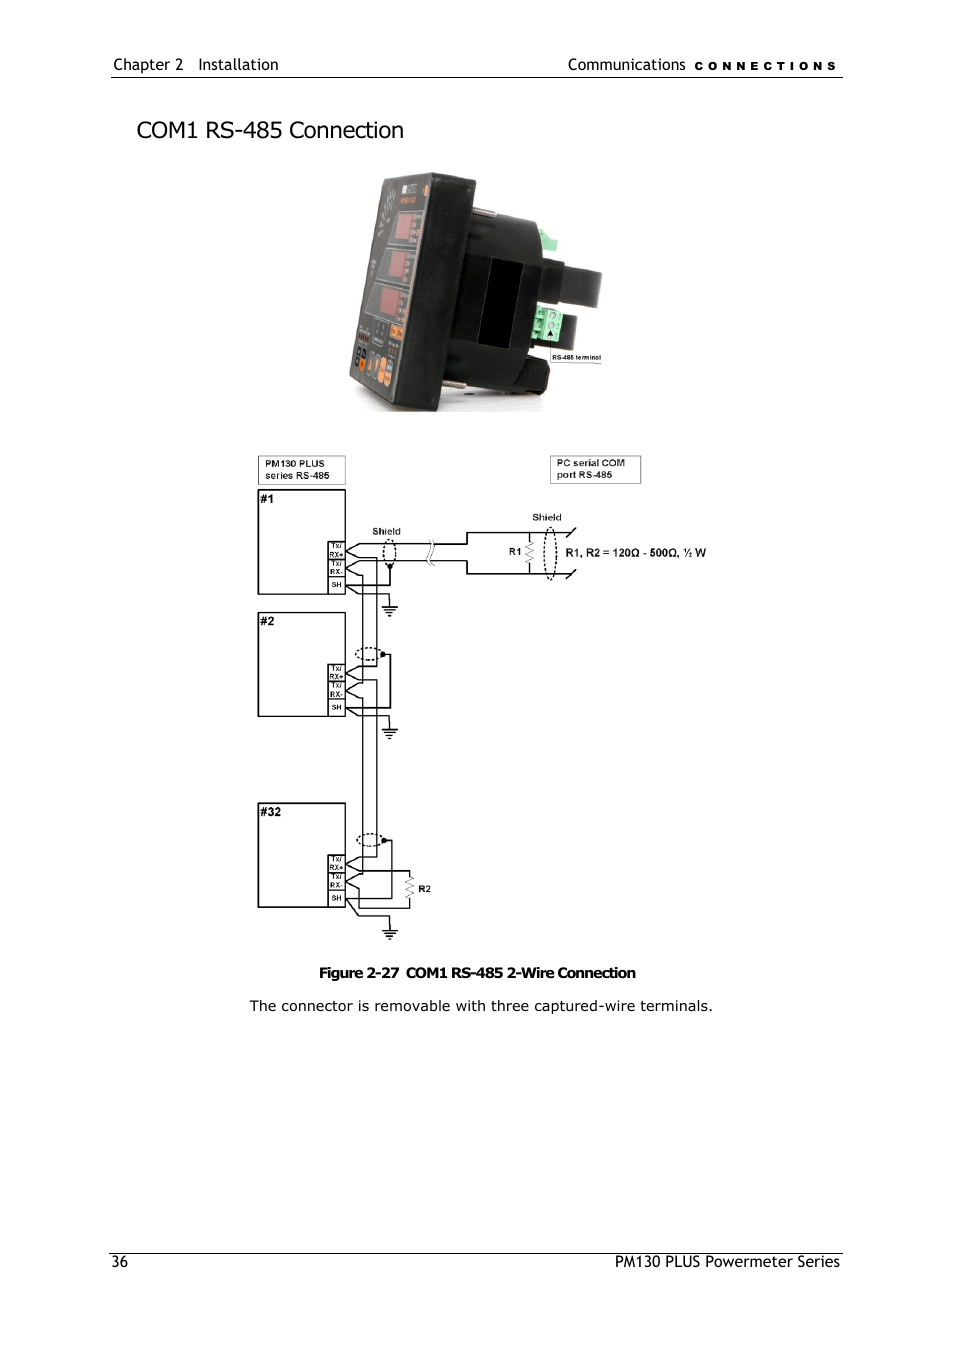 hight resolution of rs 485 2wire wiring diagram com1 rs 485 connection satec pm130 plus manual user manual page 36